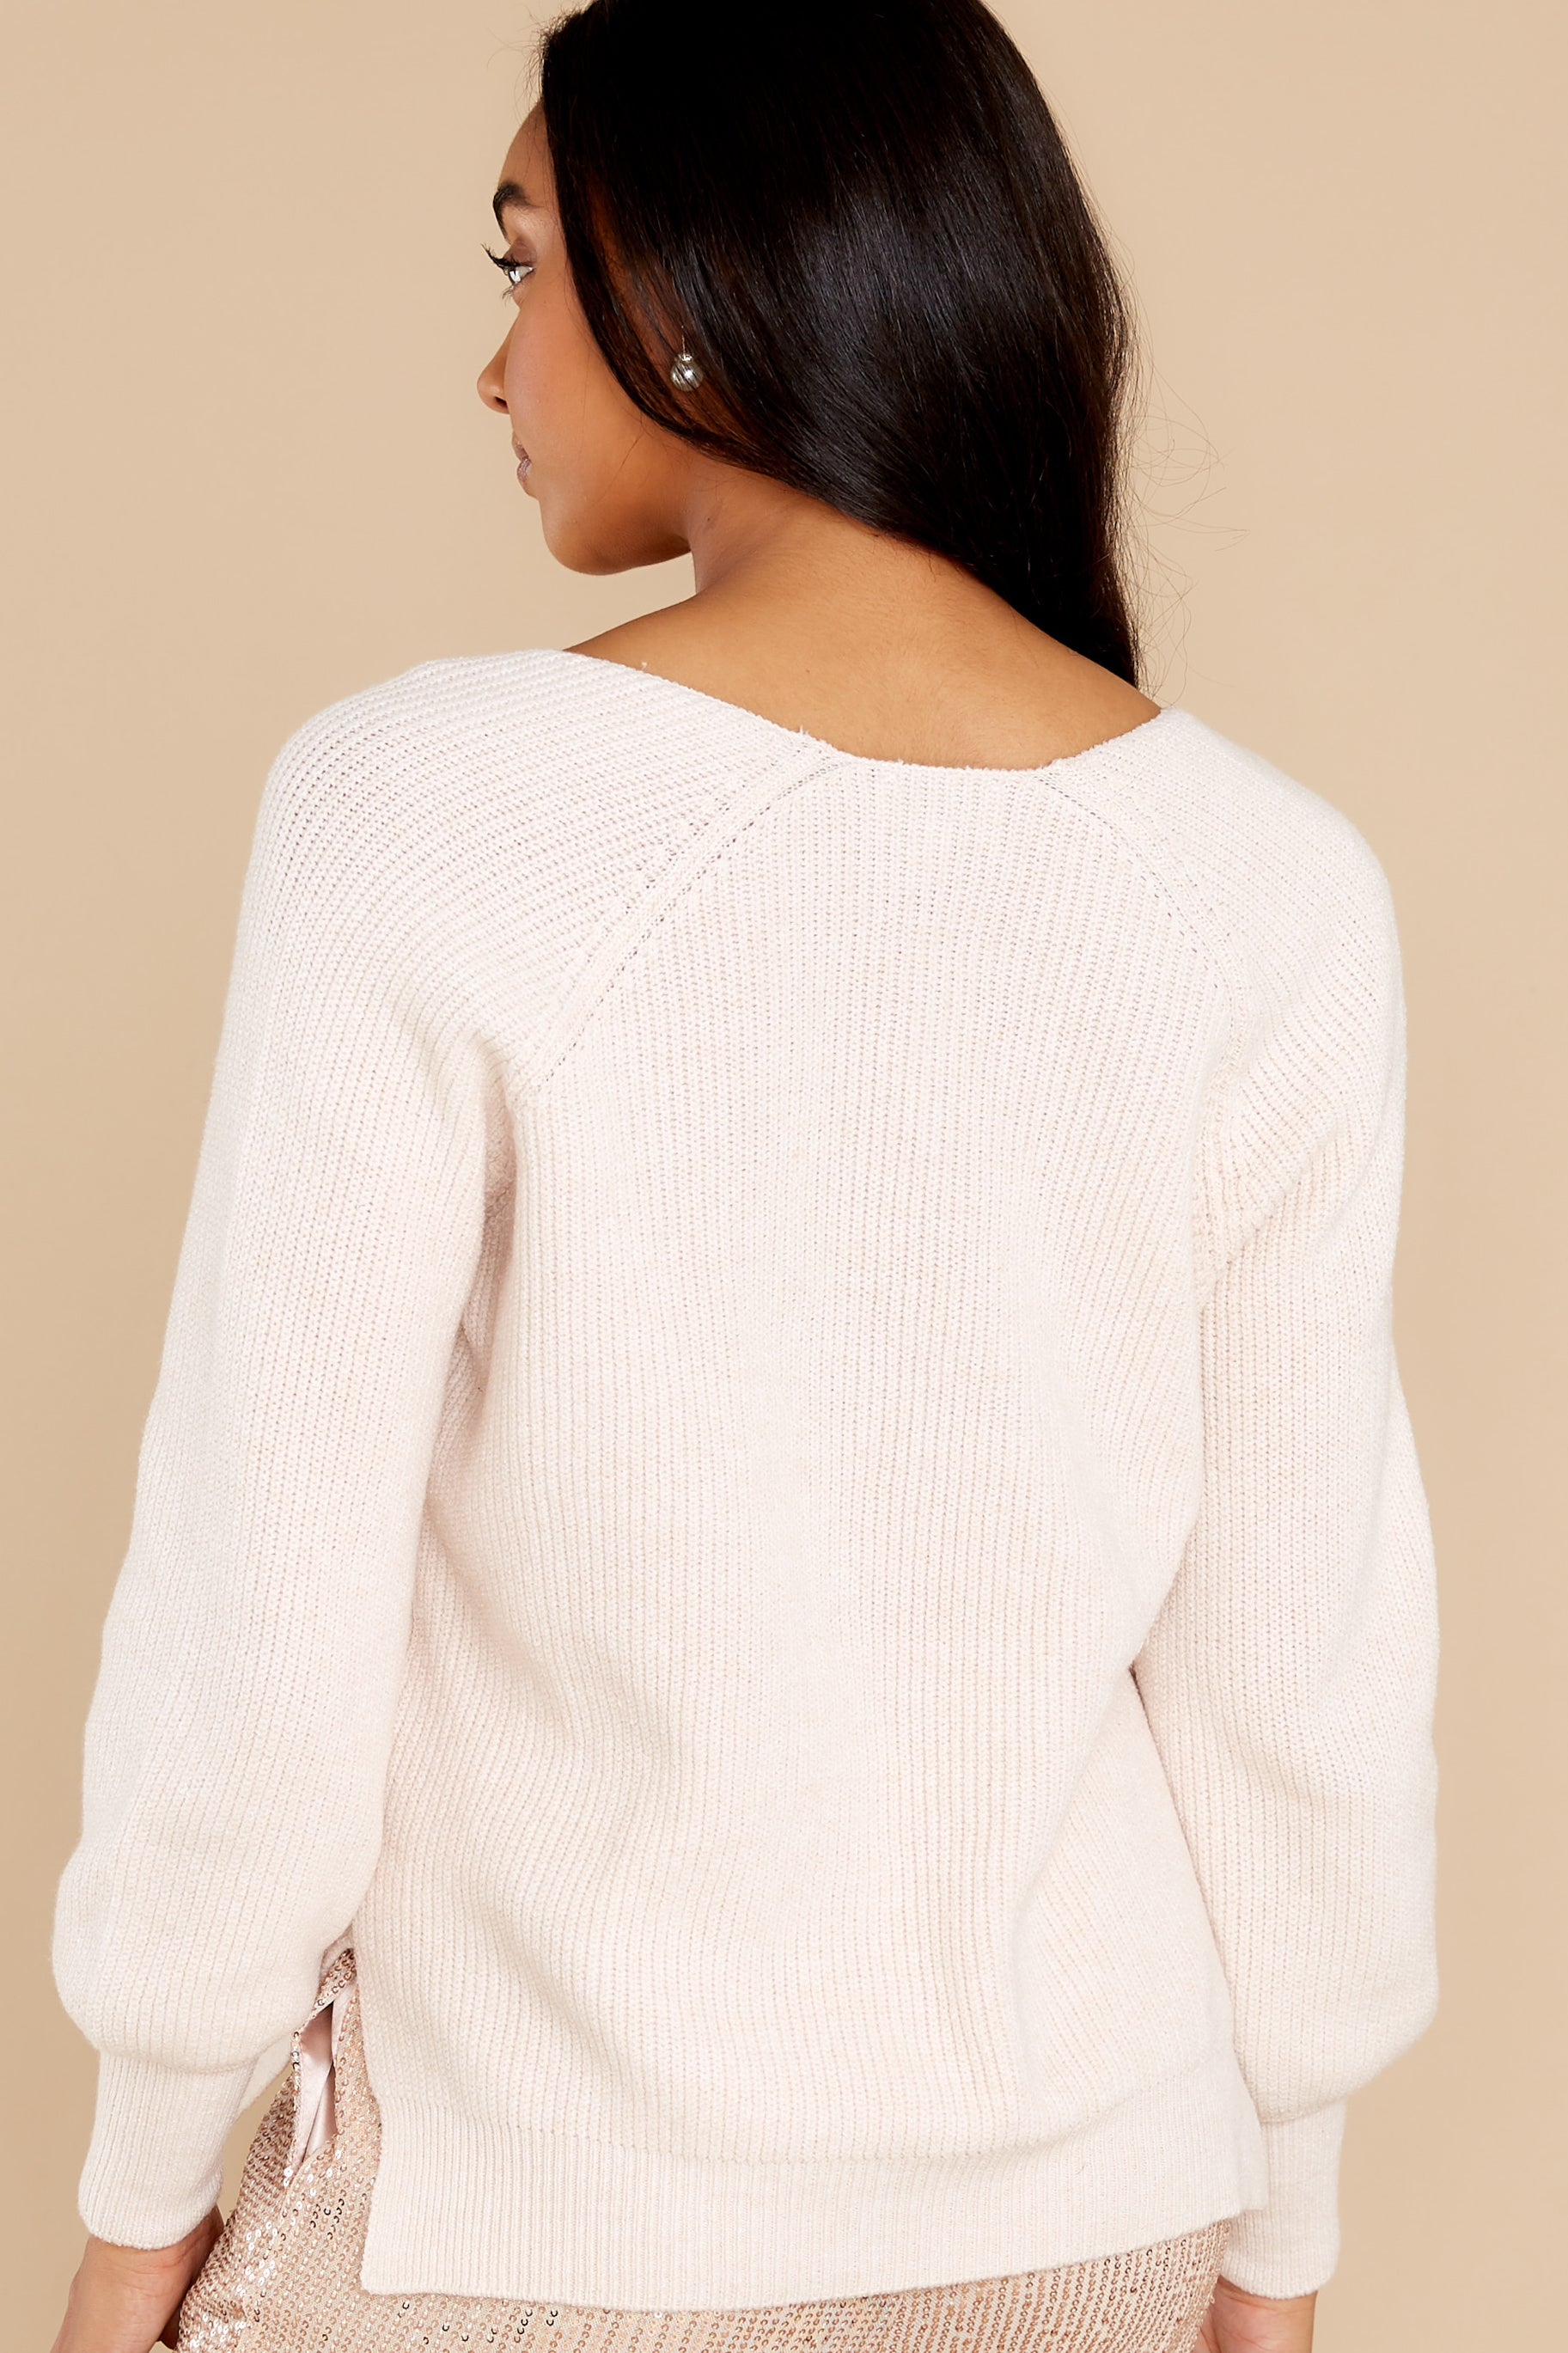 14 New Traditions Ivory Sweater at reddress.com